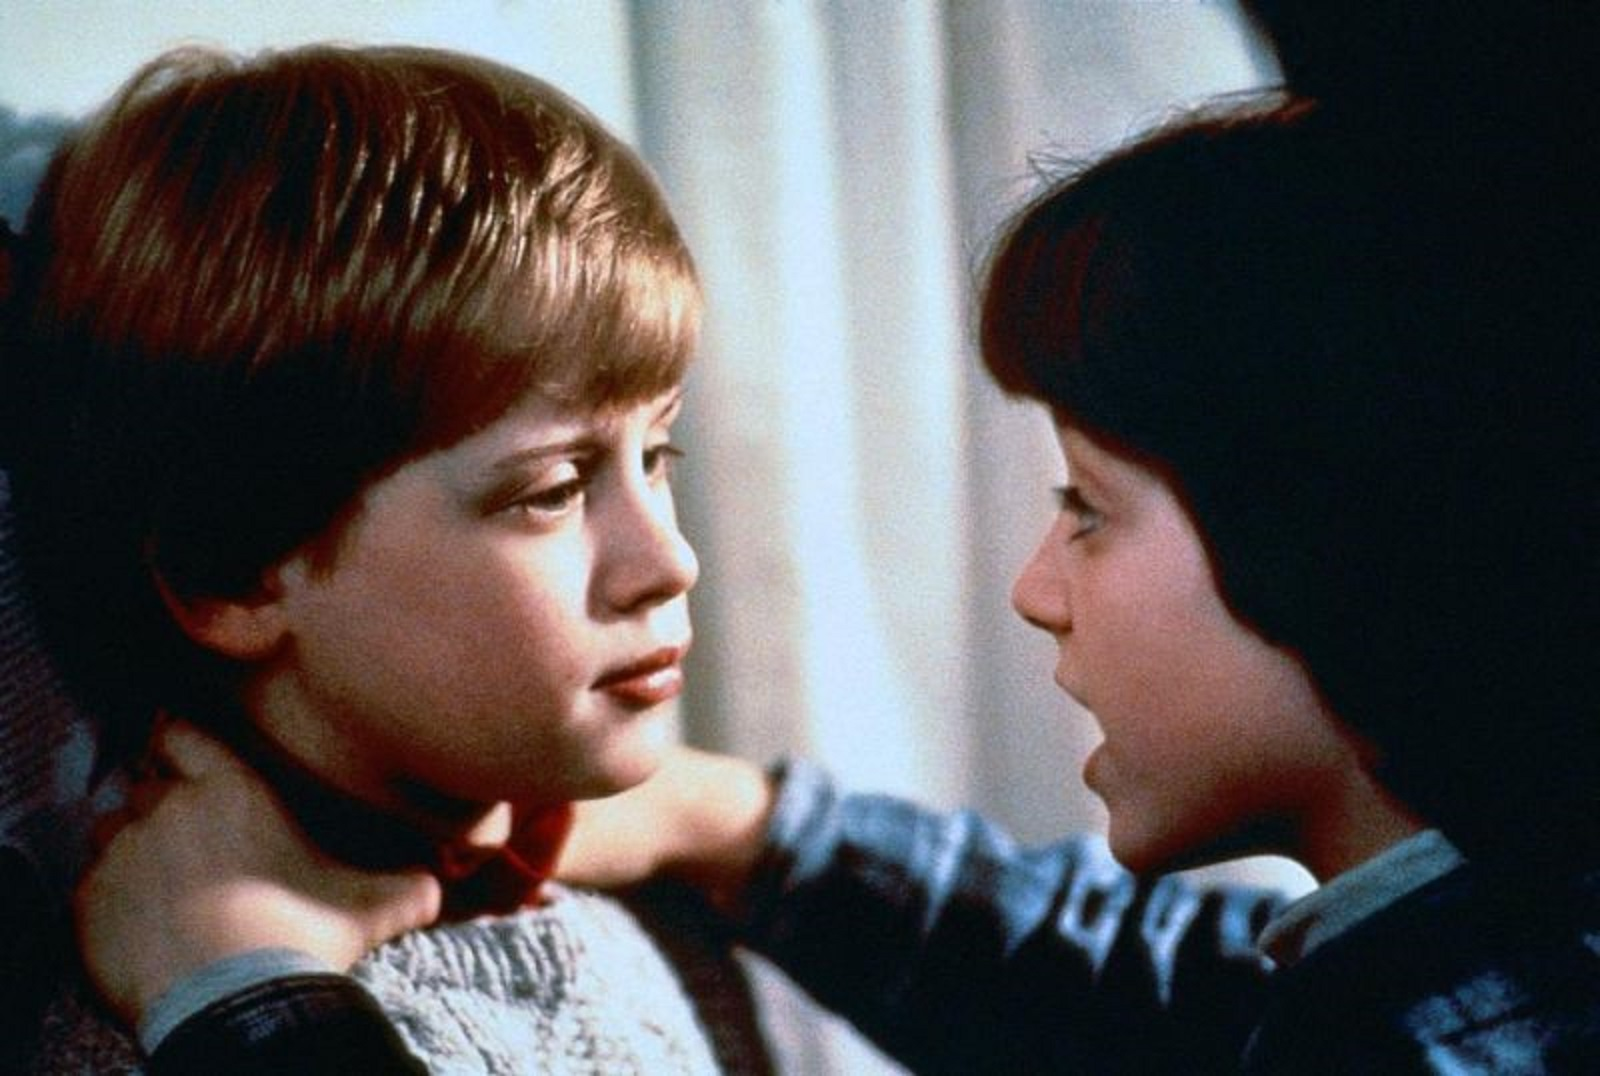 Elijah Wood tries to strangle Macaulay Culkin in The Good Son (1993)